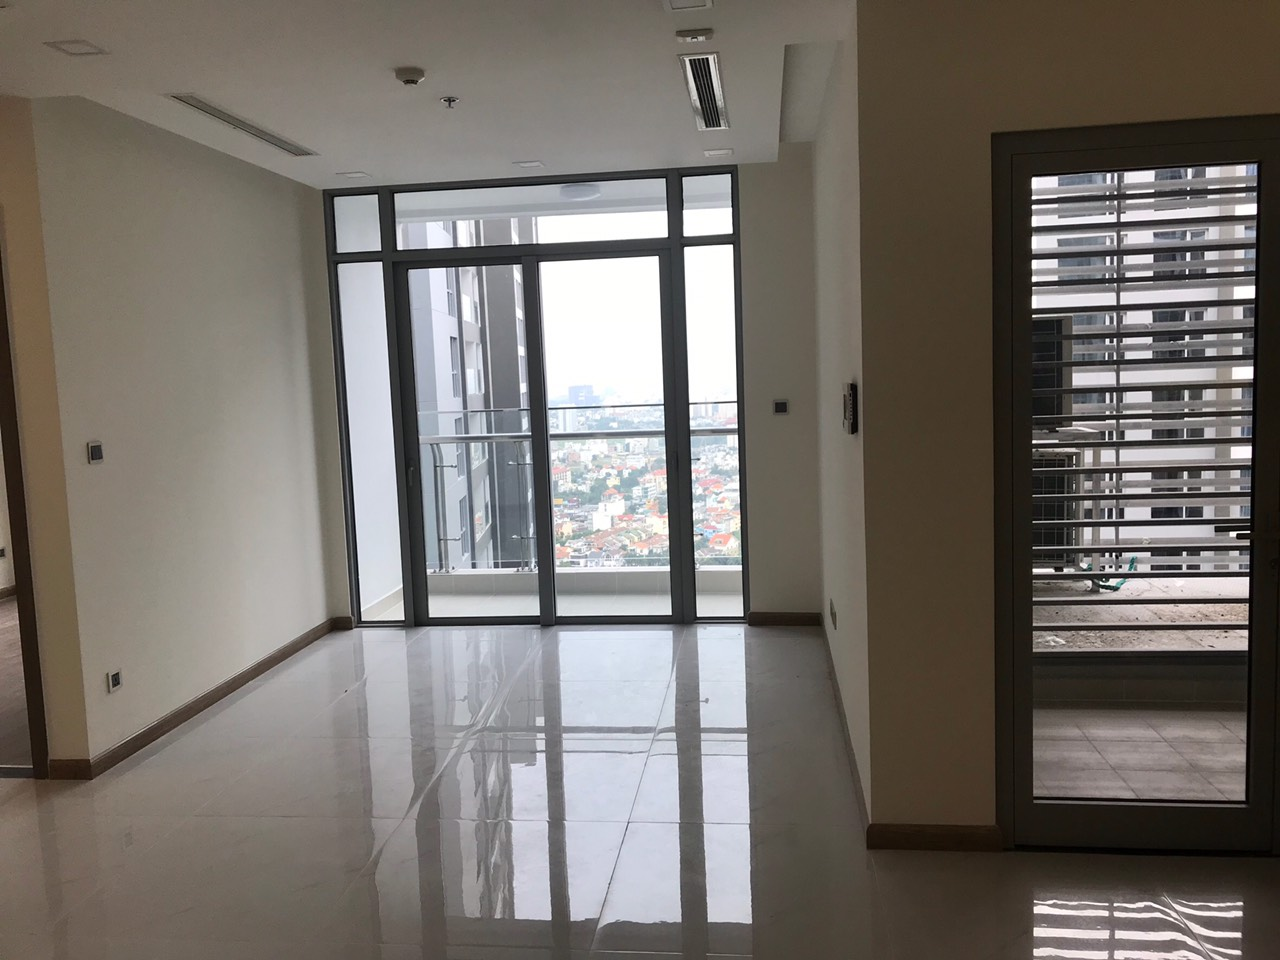 vinhomes central park apartment for rent in binh thanh district hcmc BT105P3673 (3)